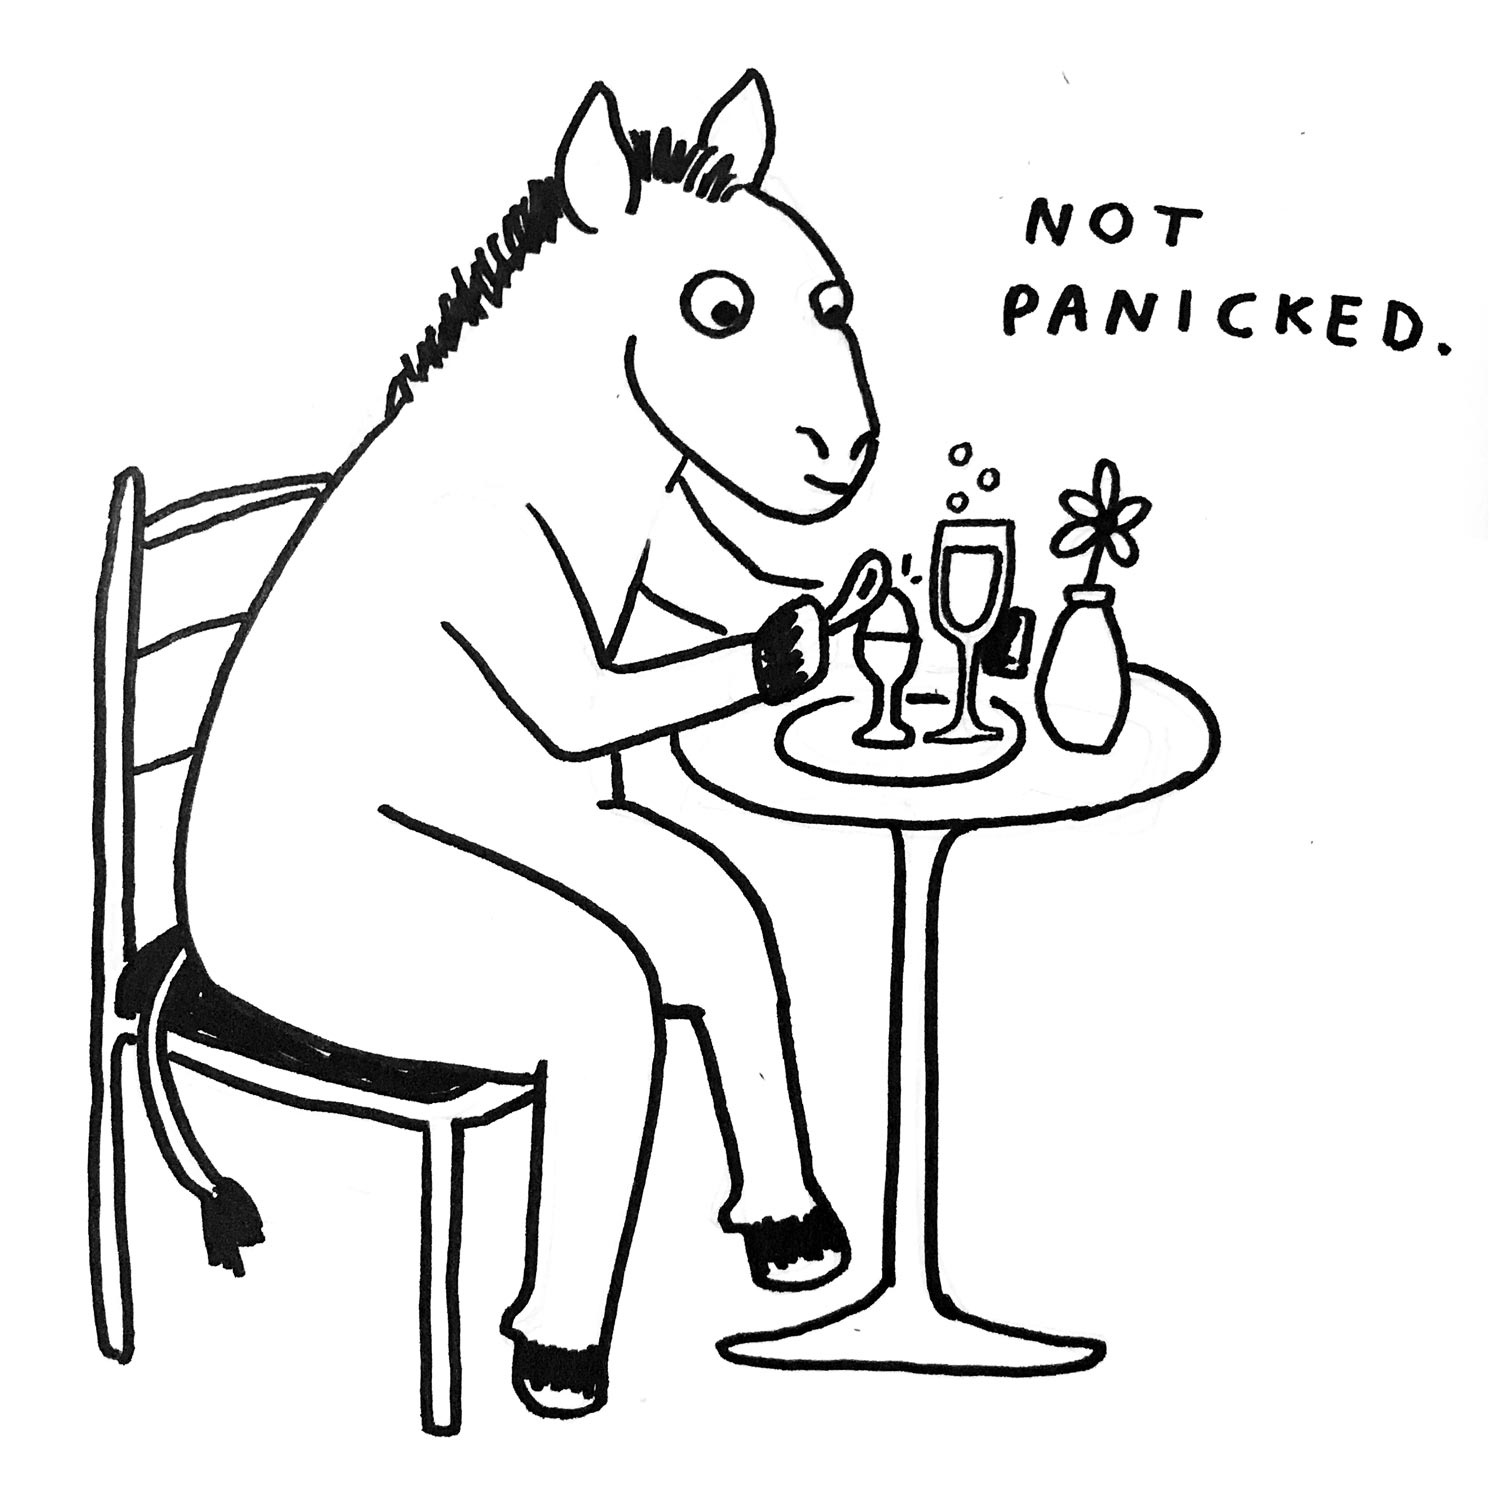 A drawing of a donkey sitting at a table for brunch.